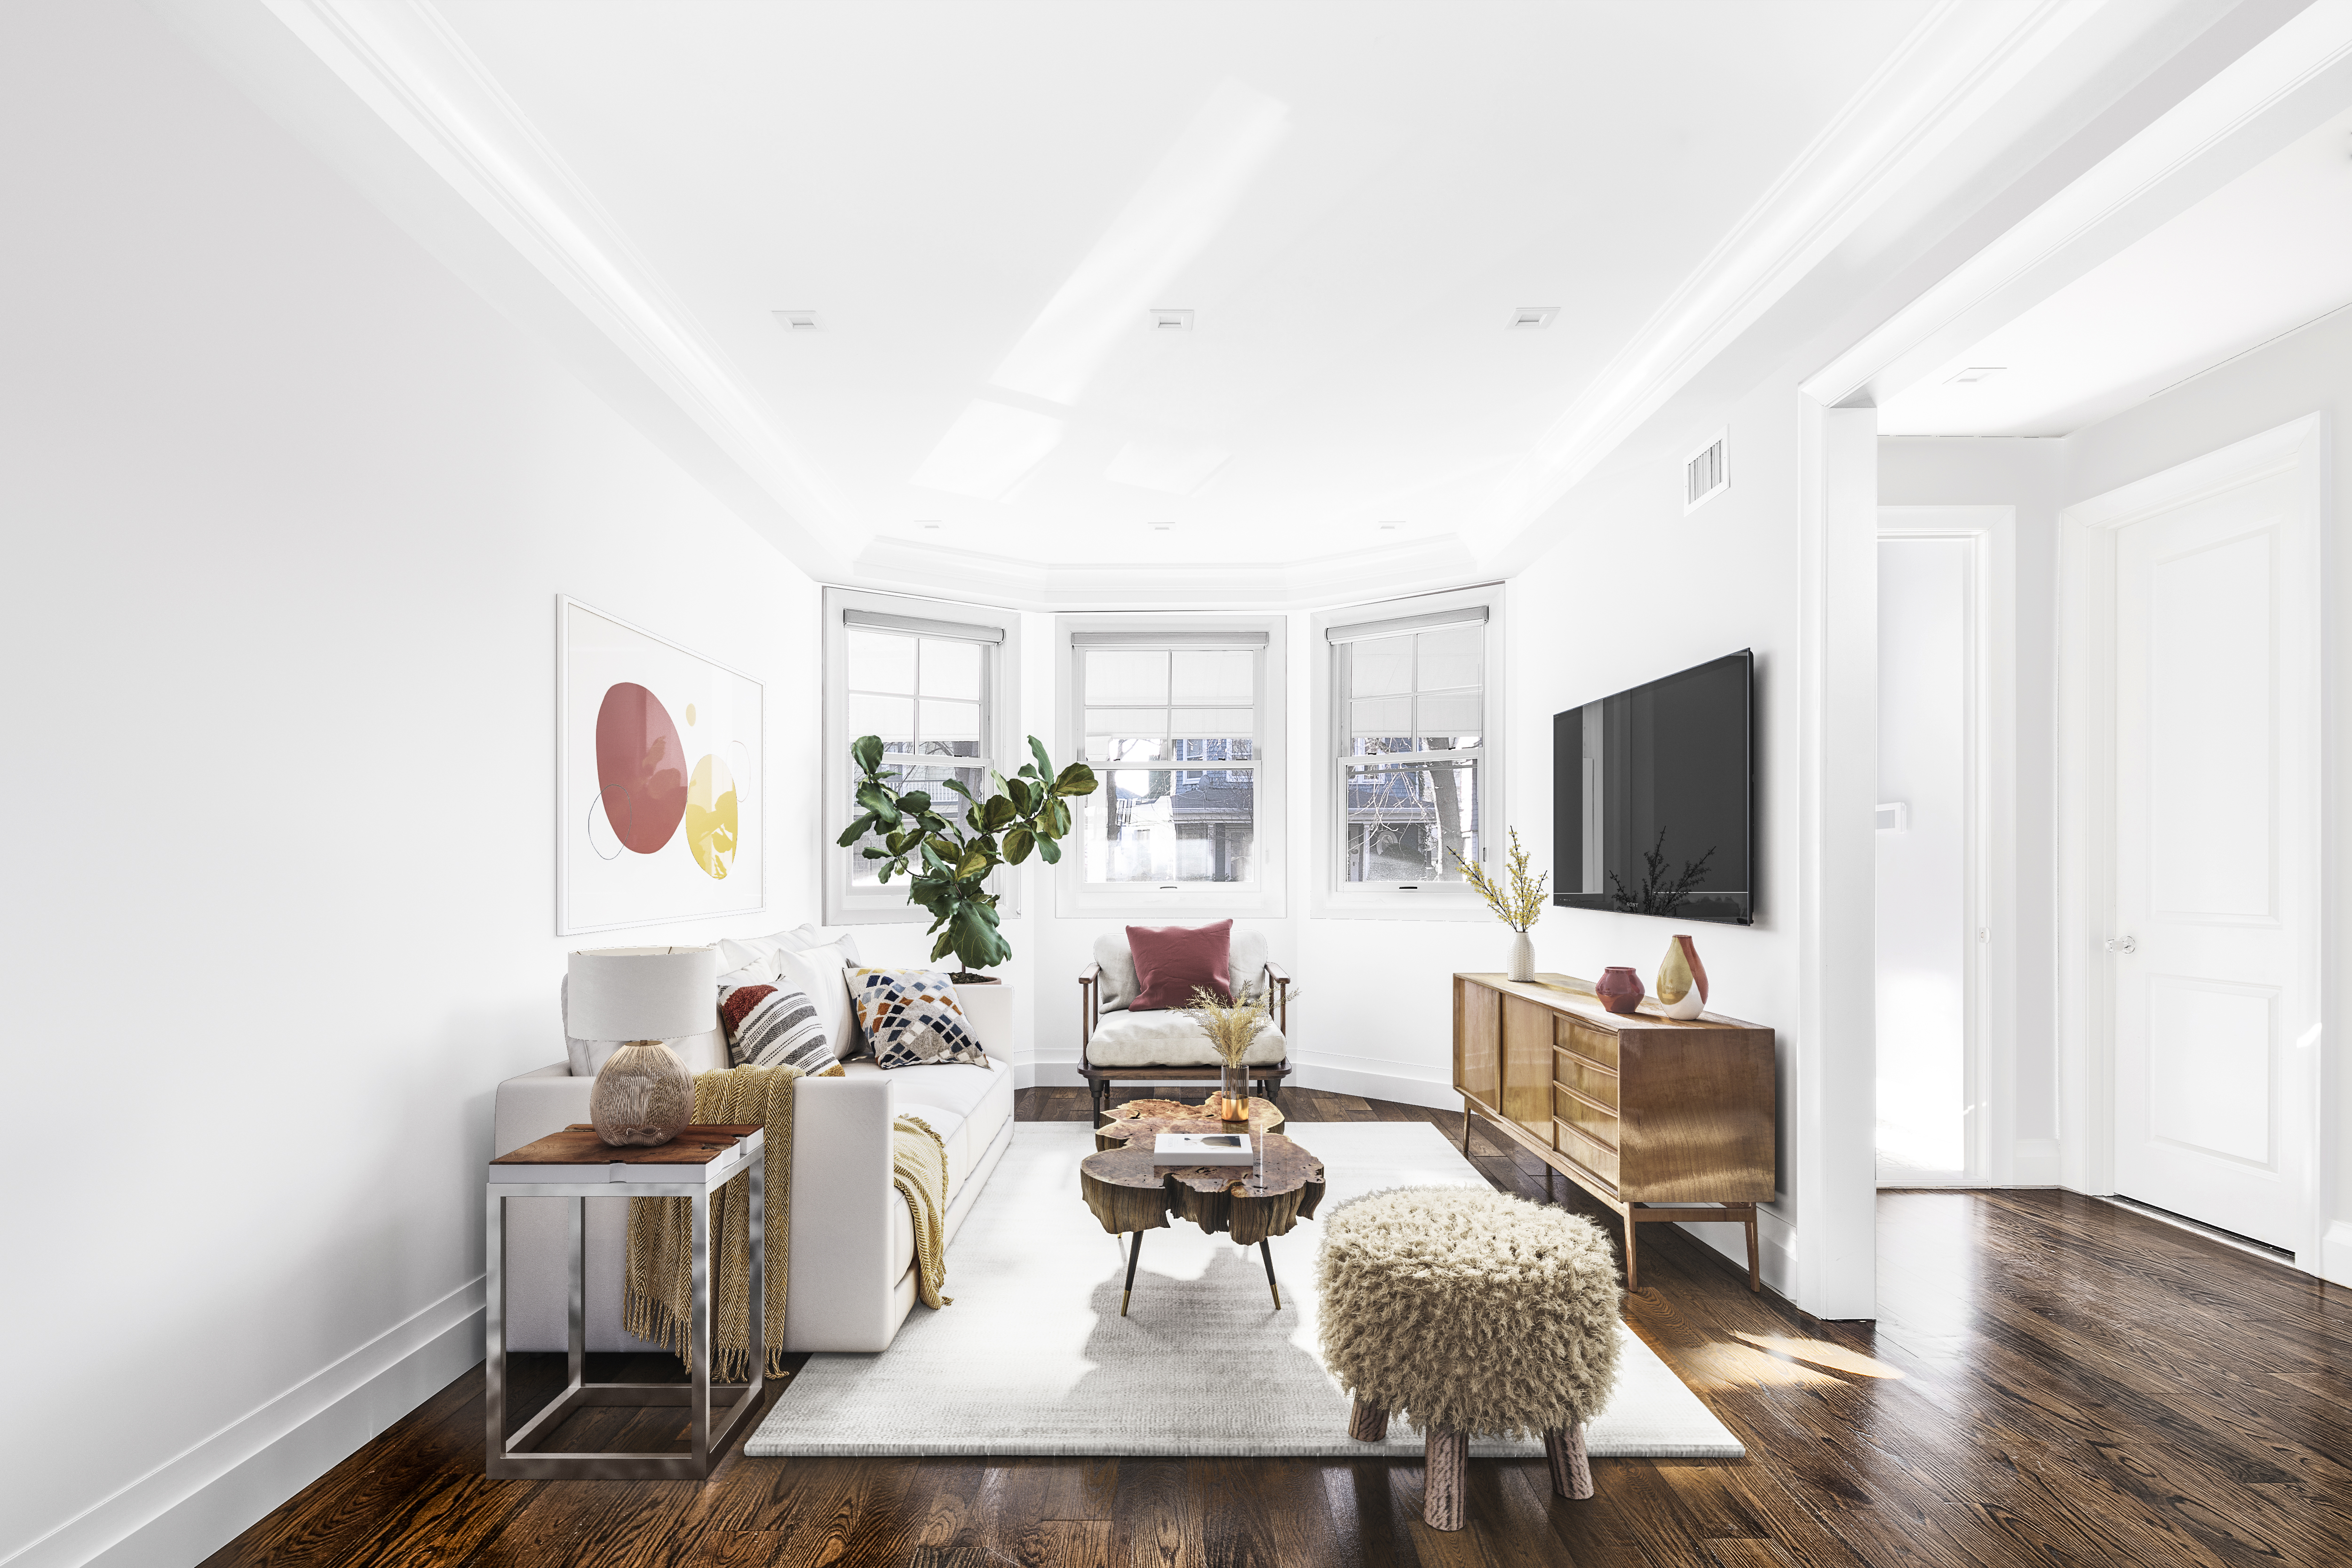 A room with white walls, a TV mounted on one wall, large windows, and a white couch.